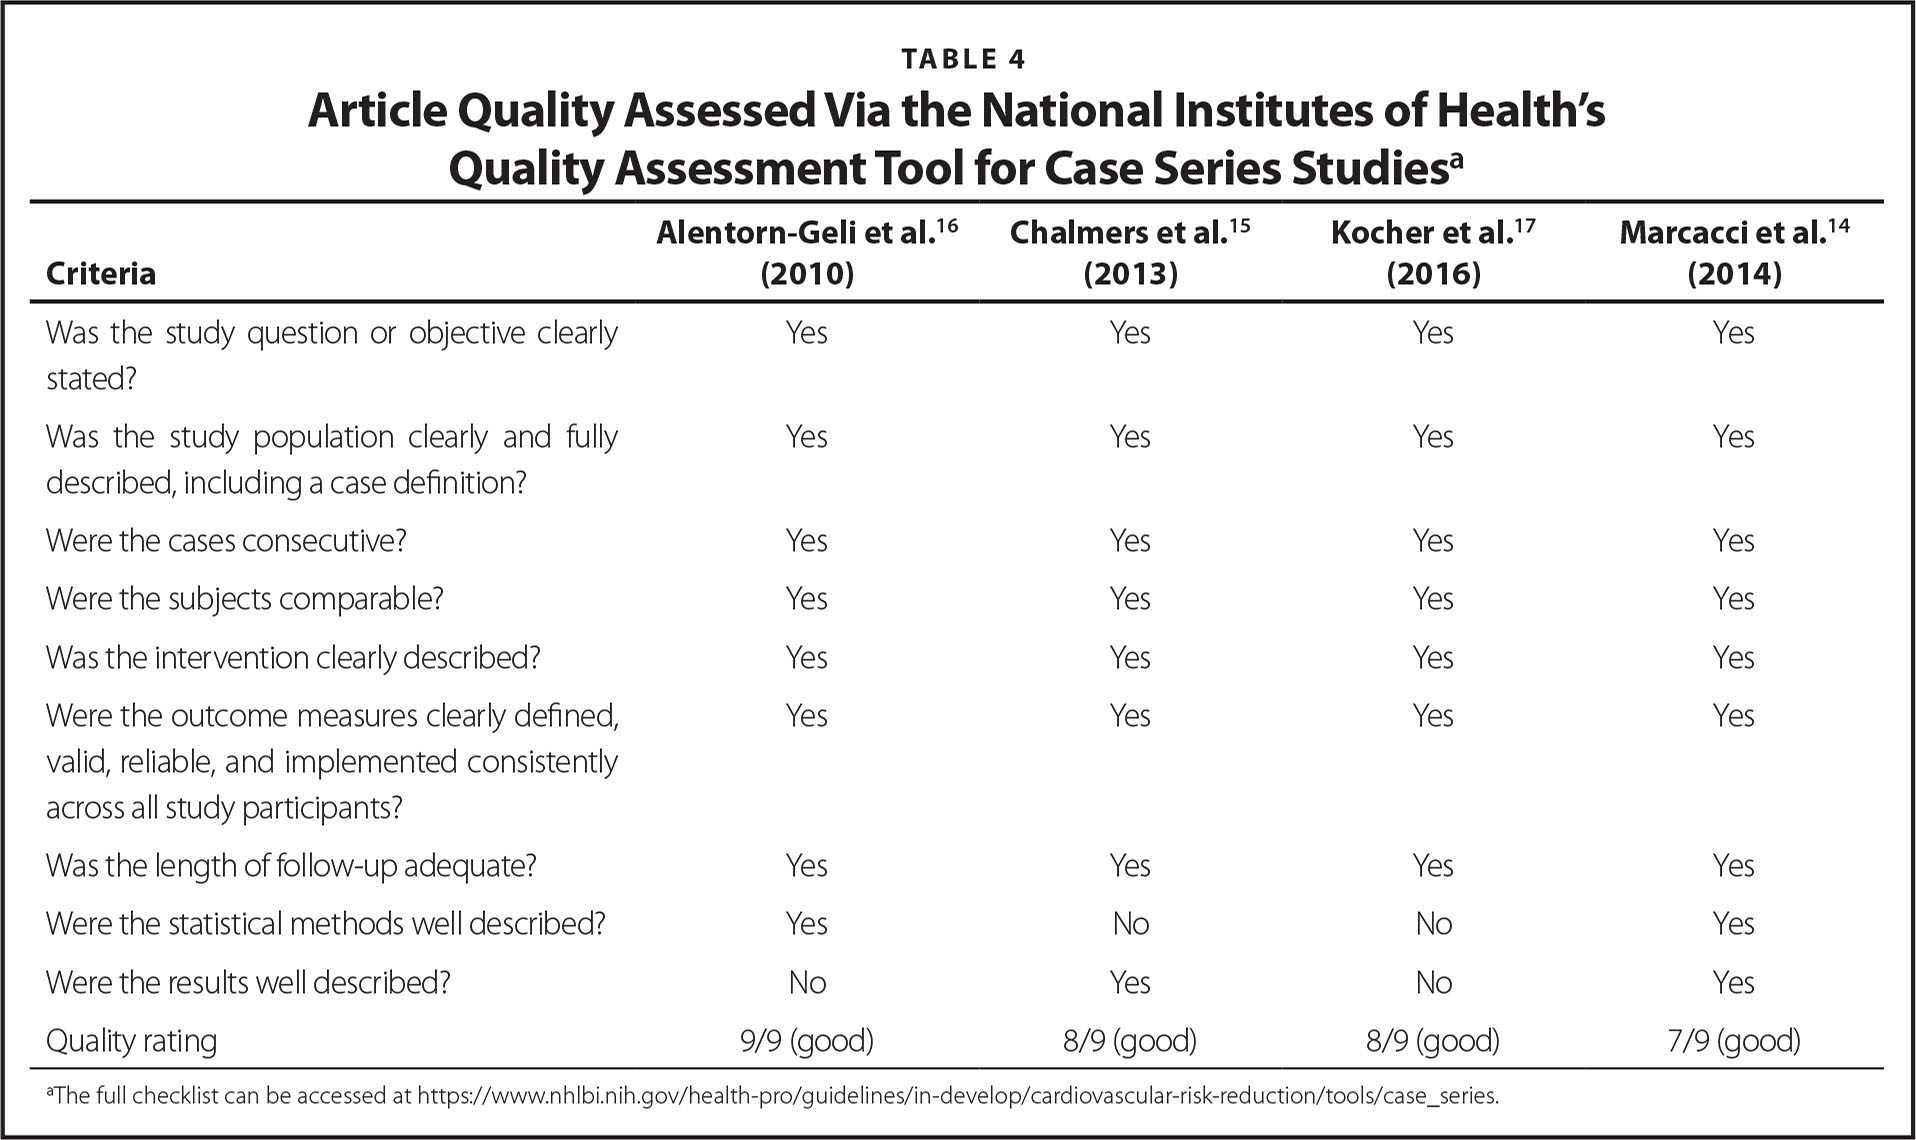 Article Quality Assessed Via the National Institutes of Health's Quality Assessment Tool for Case Series Studiesa